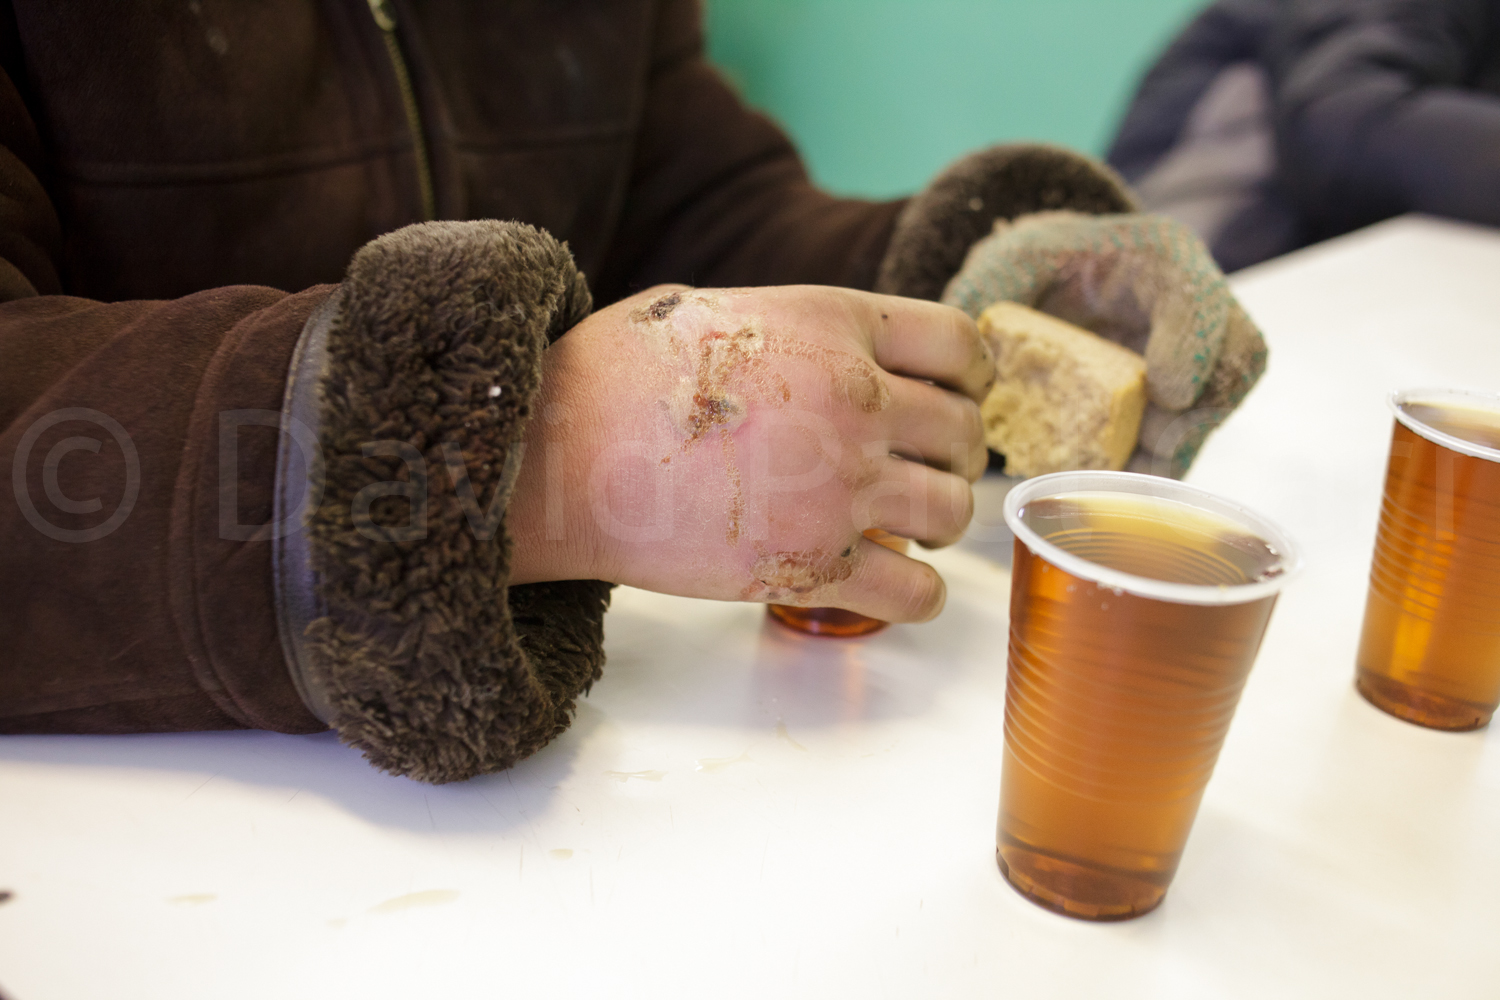 A homeless man's hands, burned by the cold.